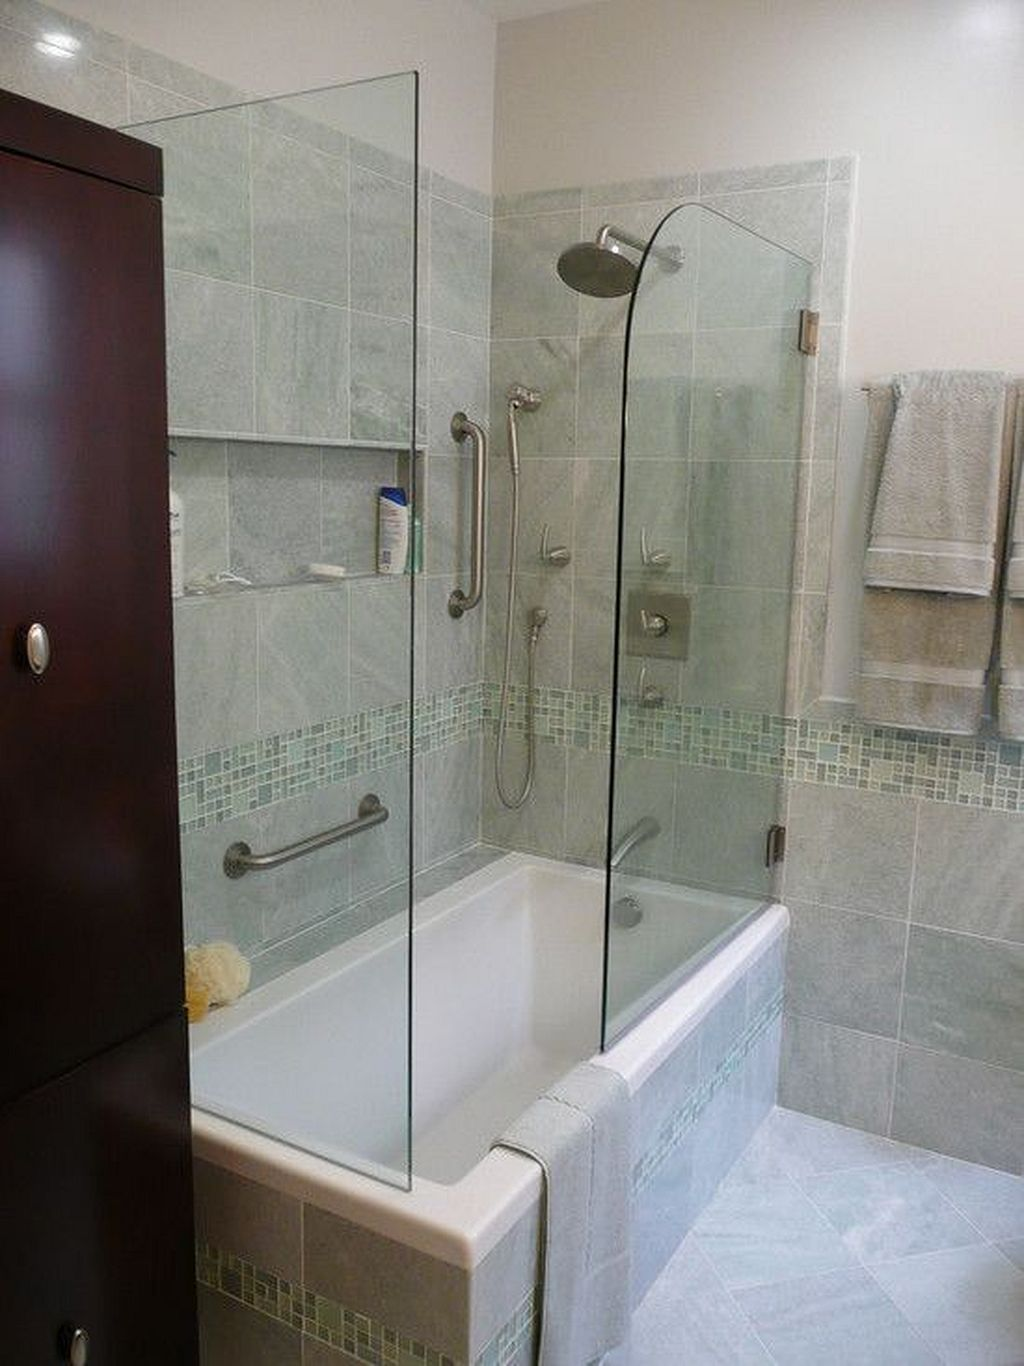 Little Bathroom When Tub And Shower If You Aspiration Of A Standalone Clawfoot This Cozy From Hometalk Is The Absolute